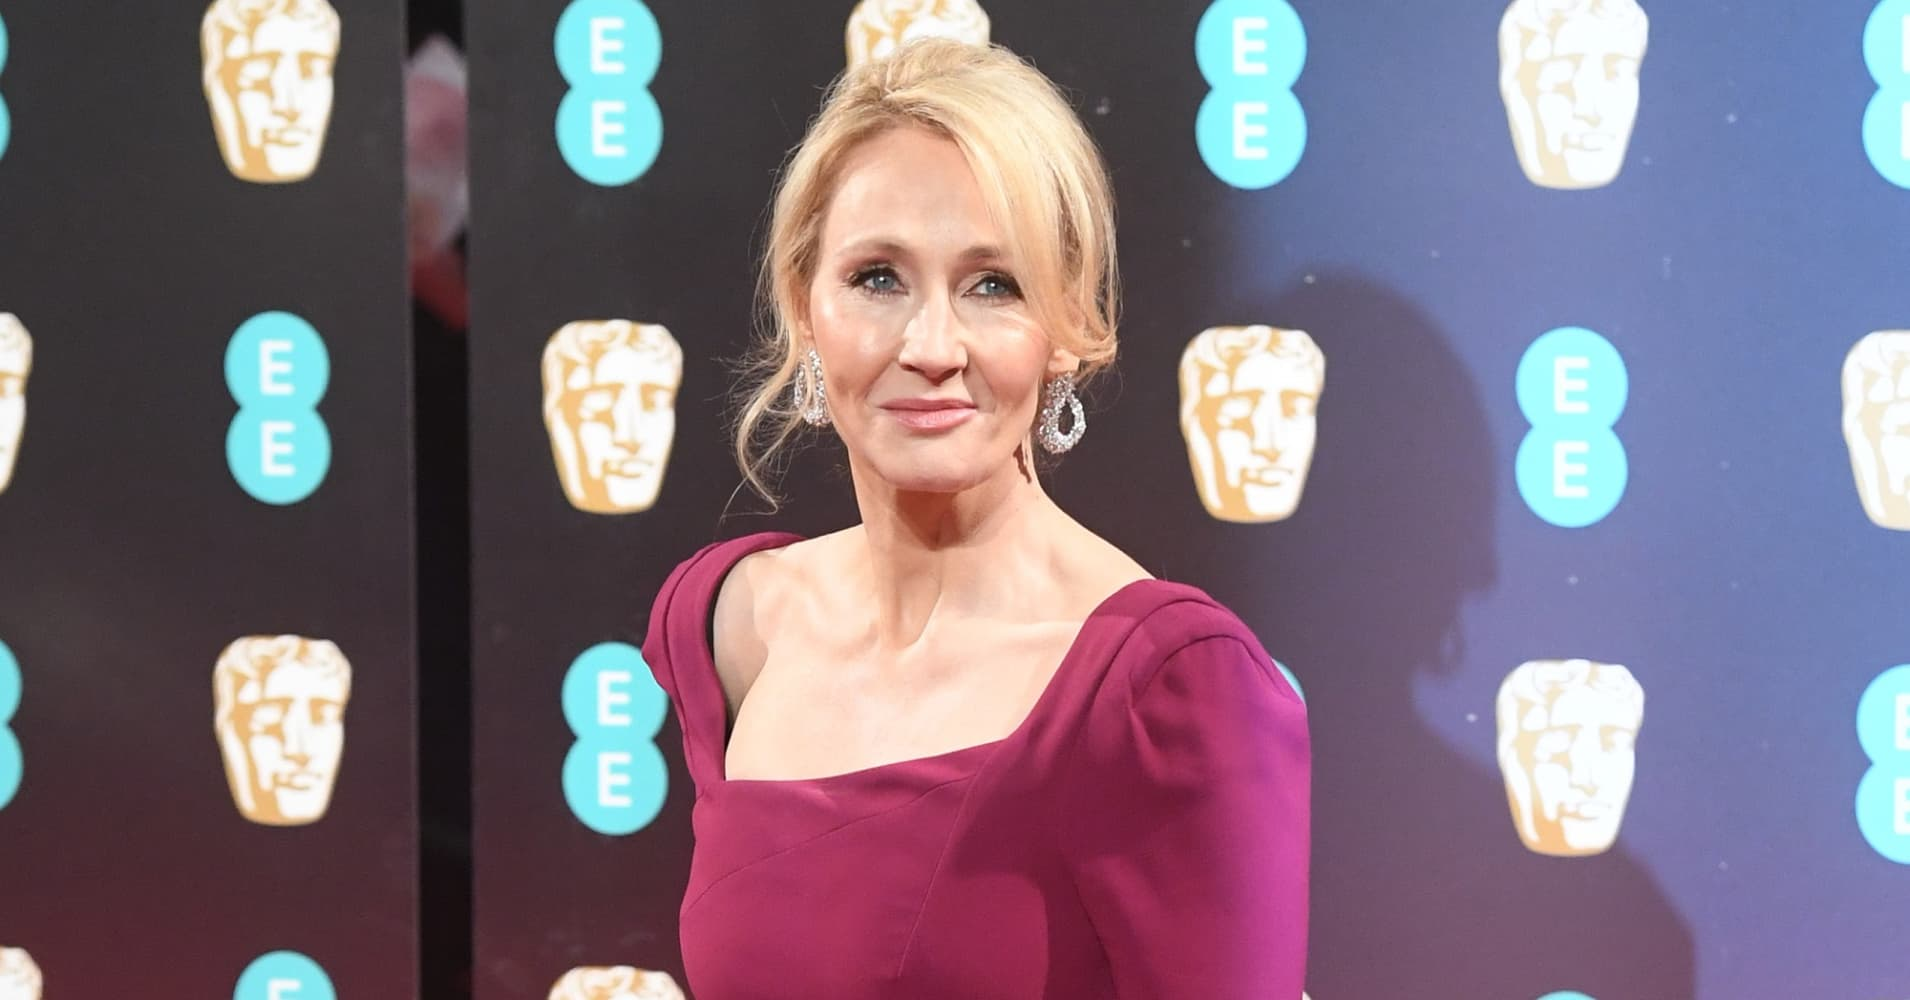 JK Rowling attends the 70th EE British Academy Film Awards (BAFTA) at Royal Albert Hall.